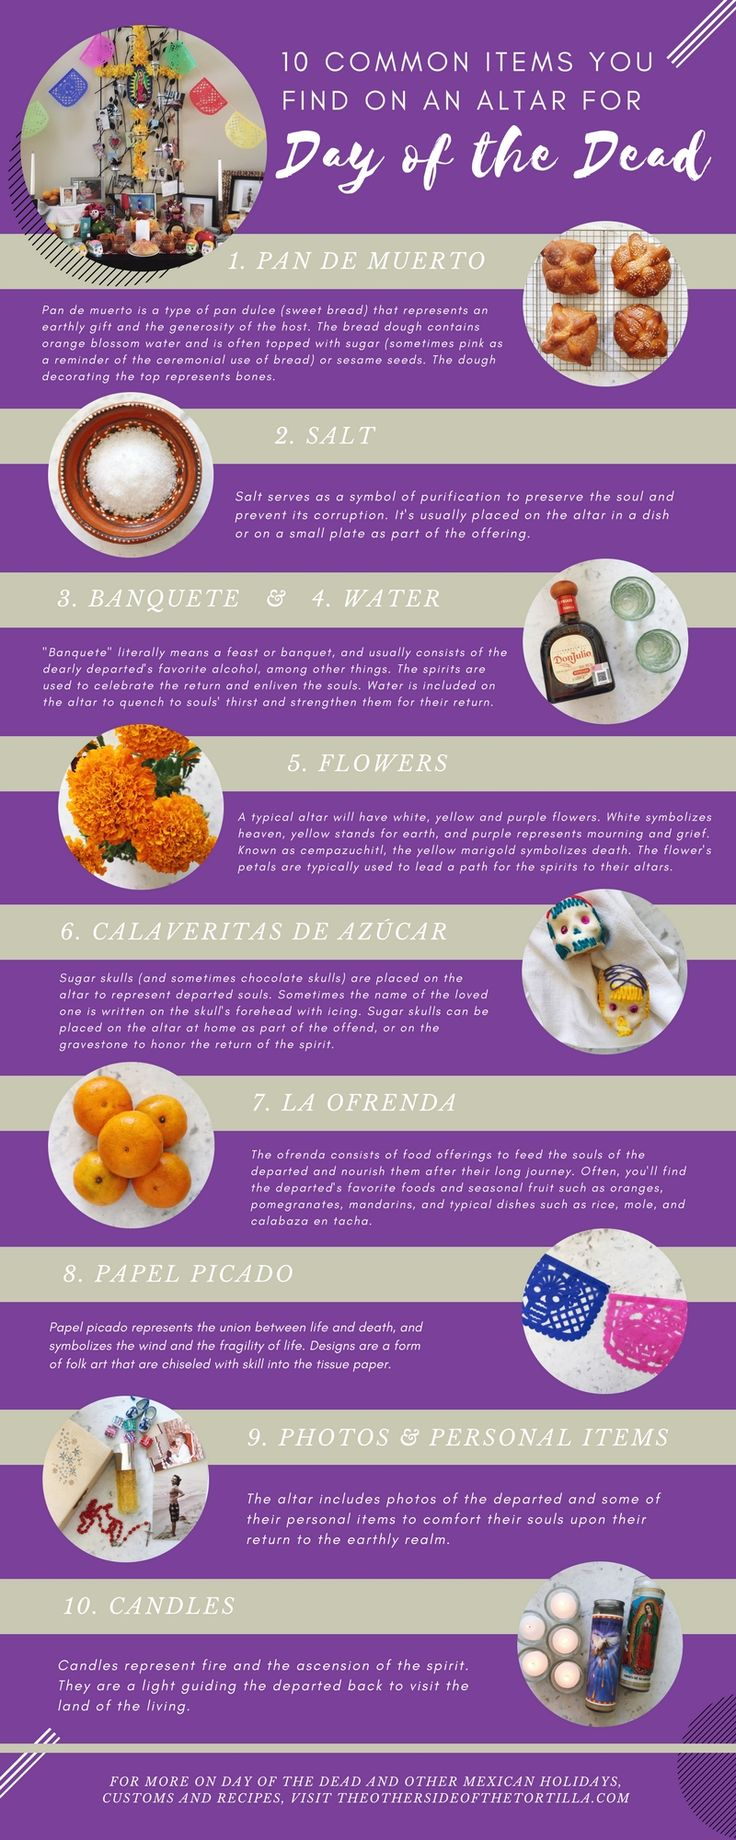 10 common items found on an altar for Day of the Dead and other information on celebrating this sacred Mexican holiday, via theothersideofthetortilla.com